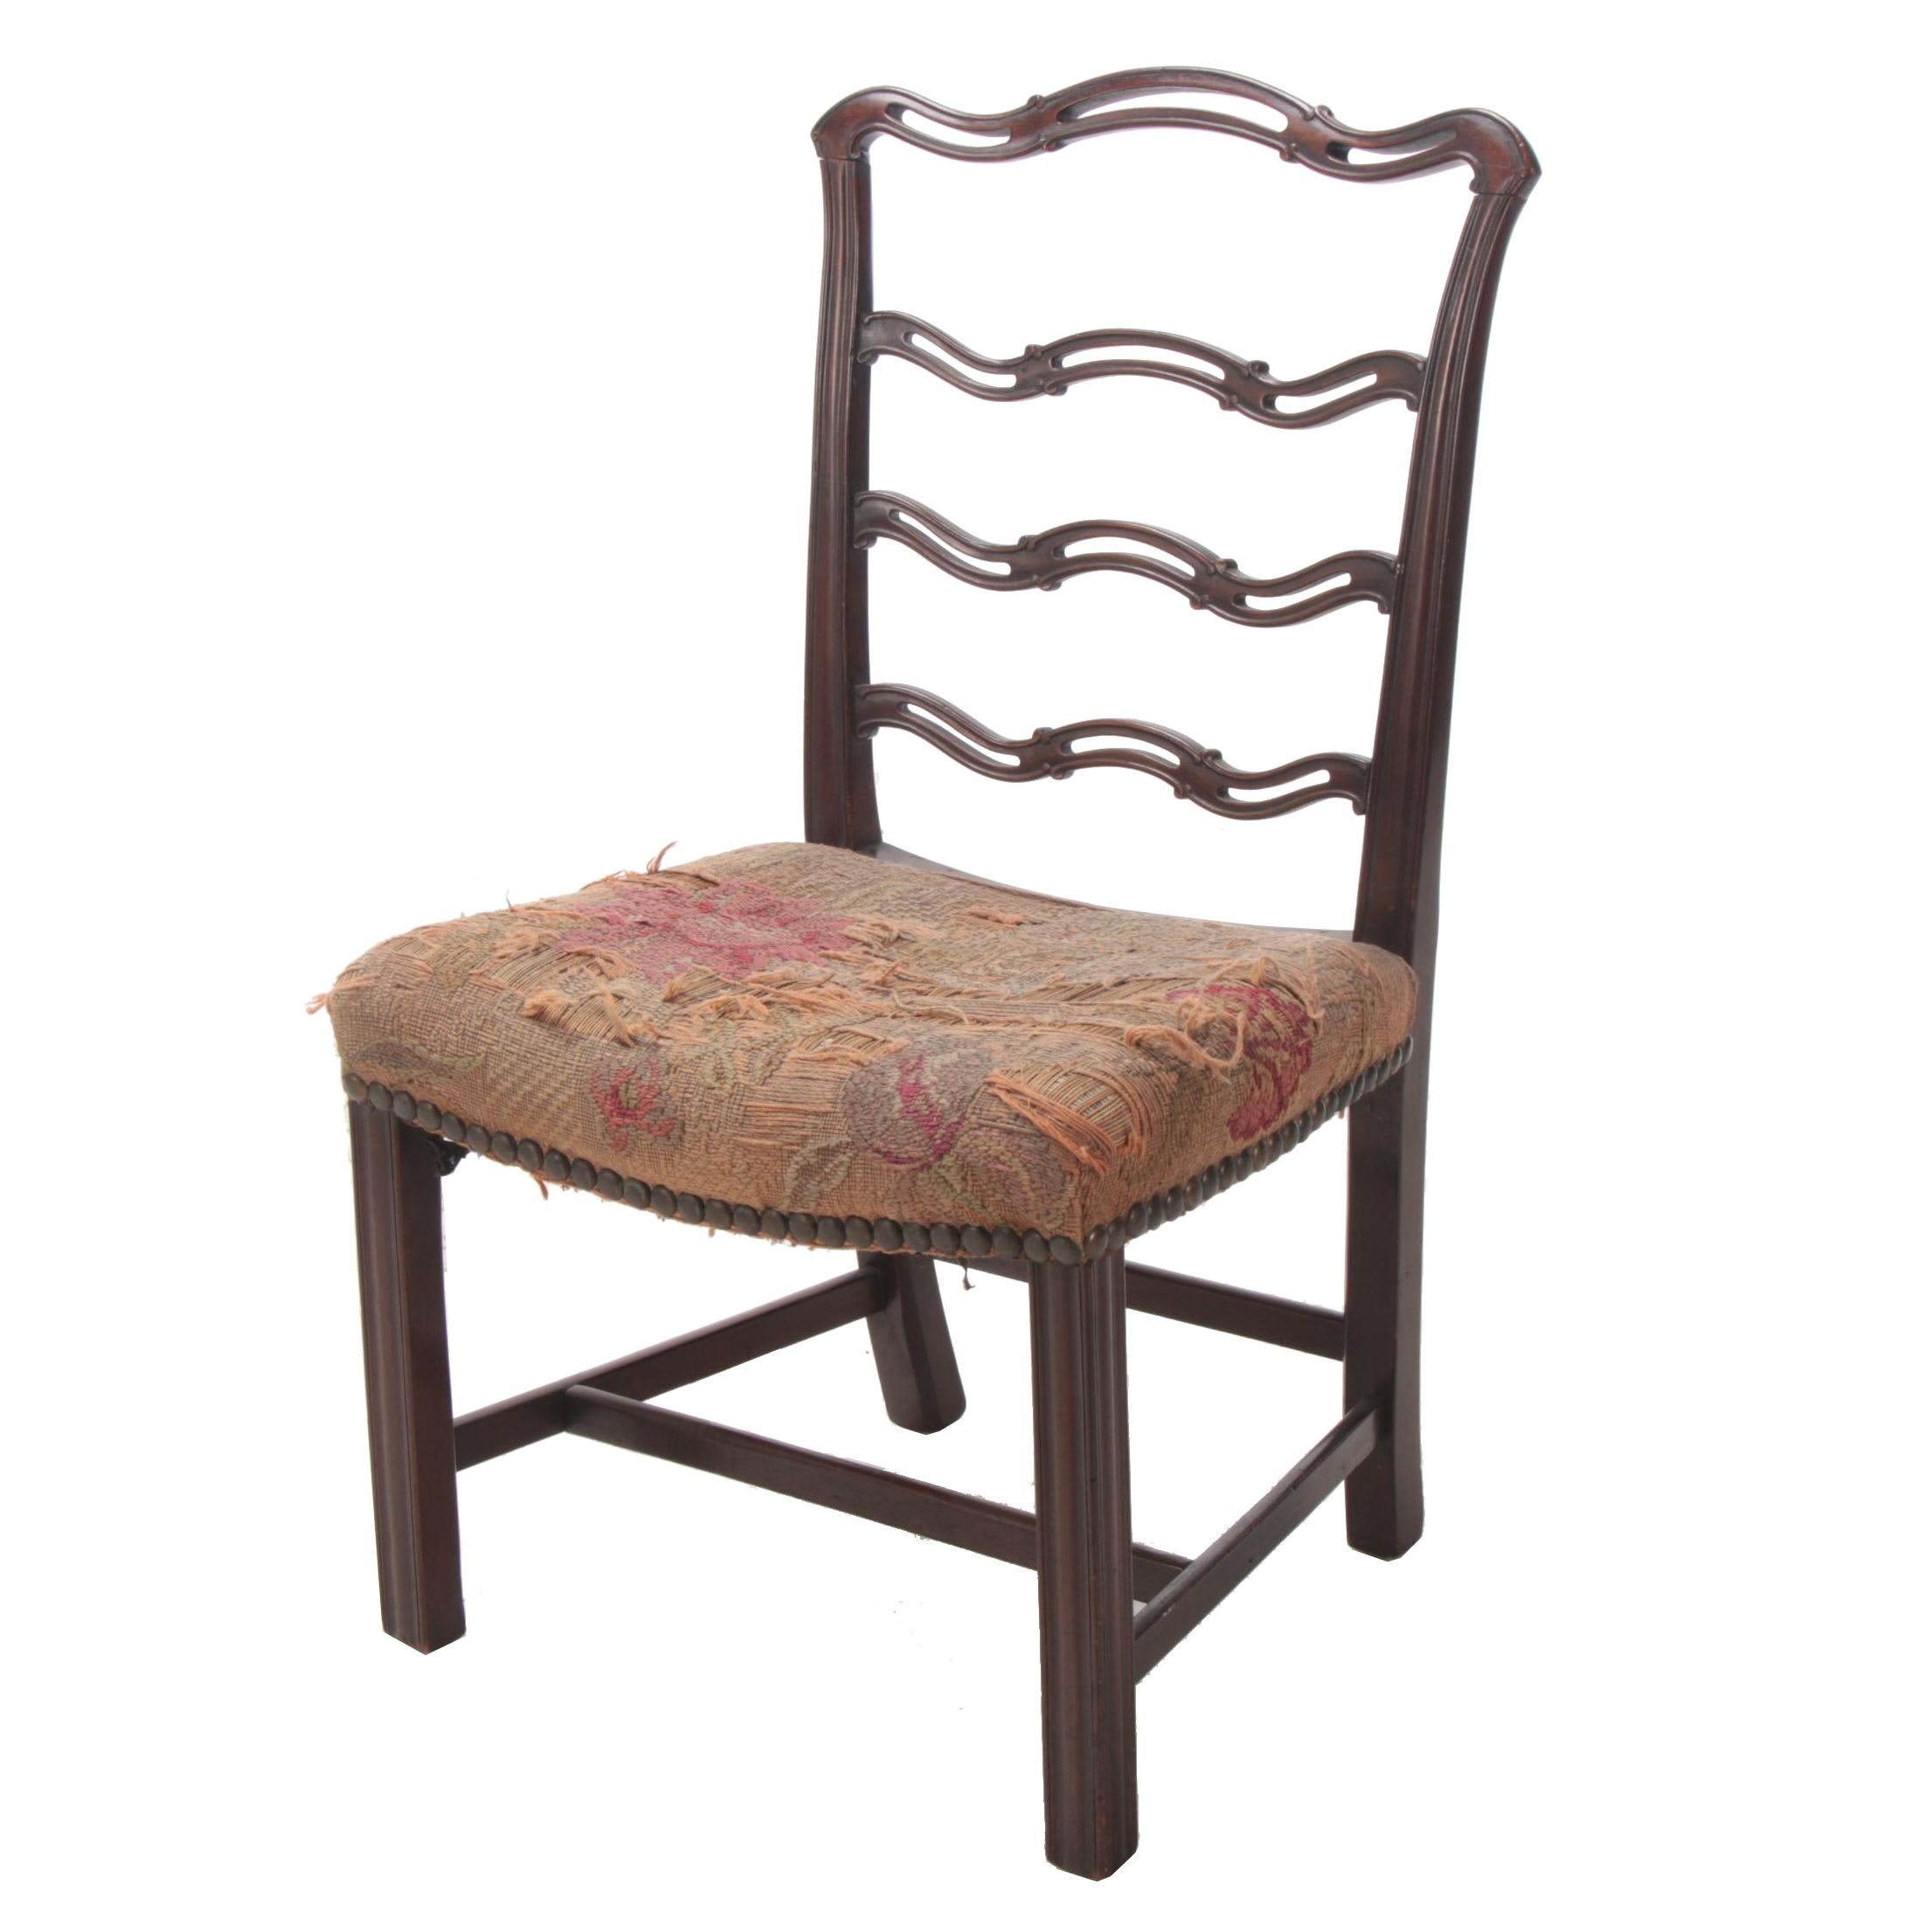 George III Style Carved Mahogany Ladderback Side Chair, 19th Century